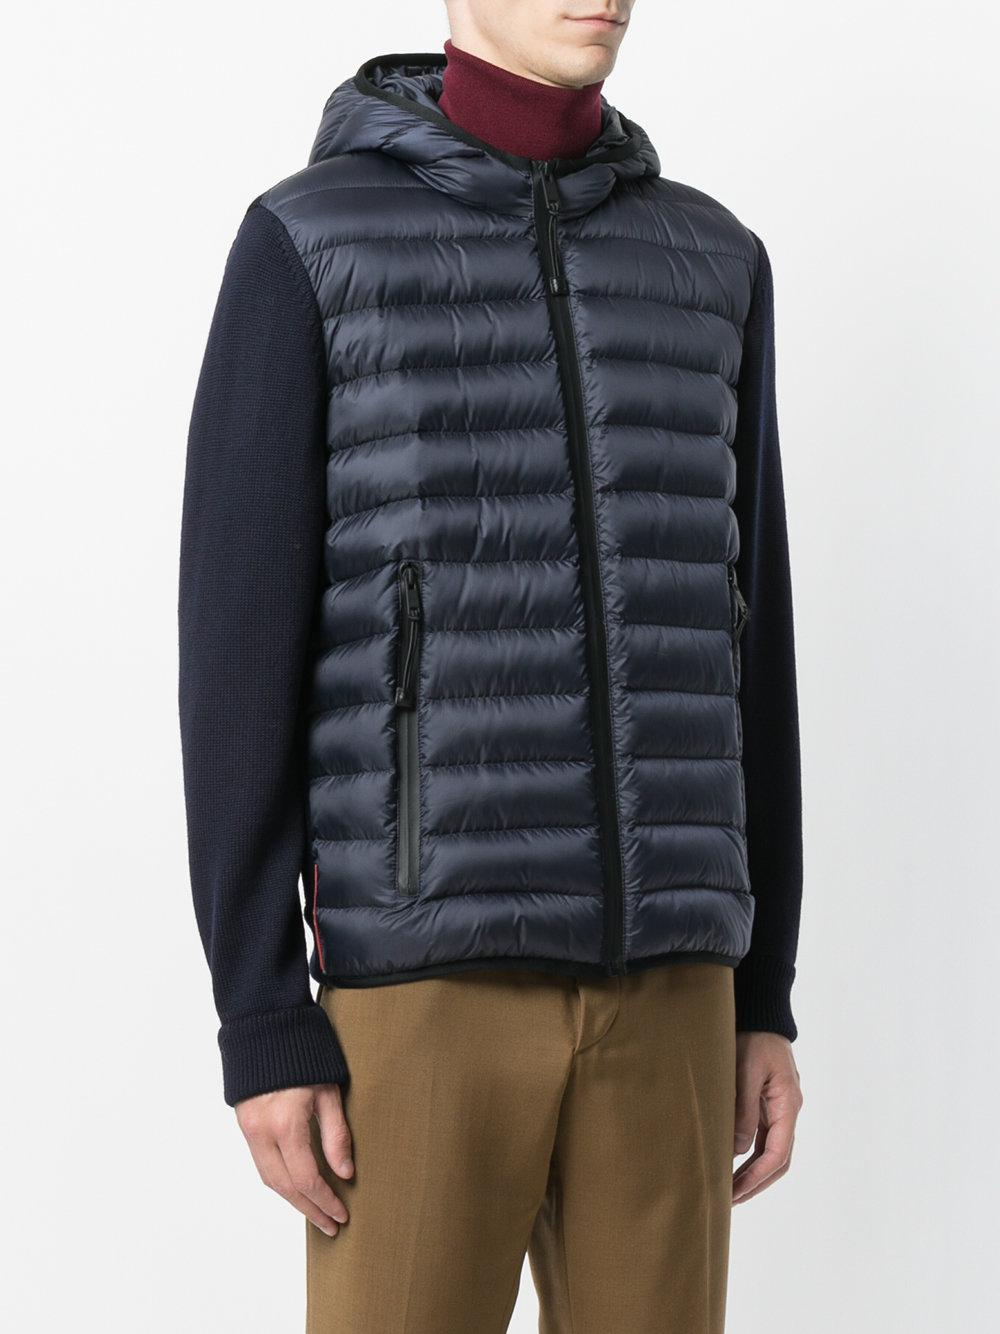 Prada Leather Padded Zipped Jacket in Blue for Men